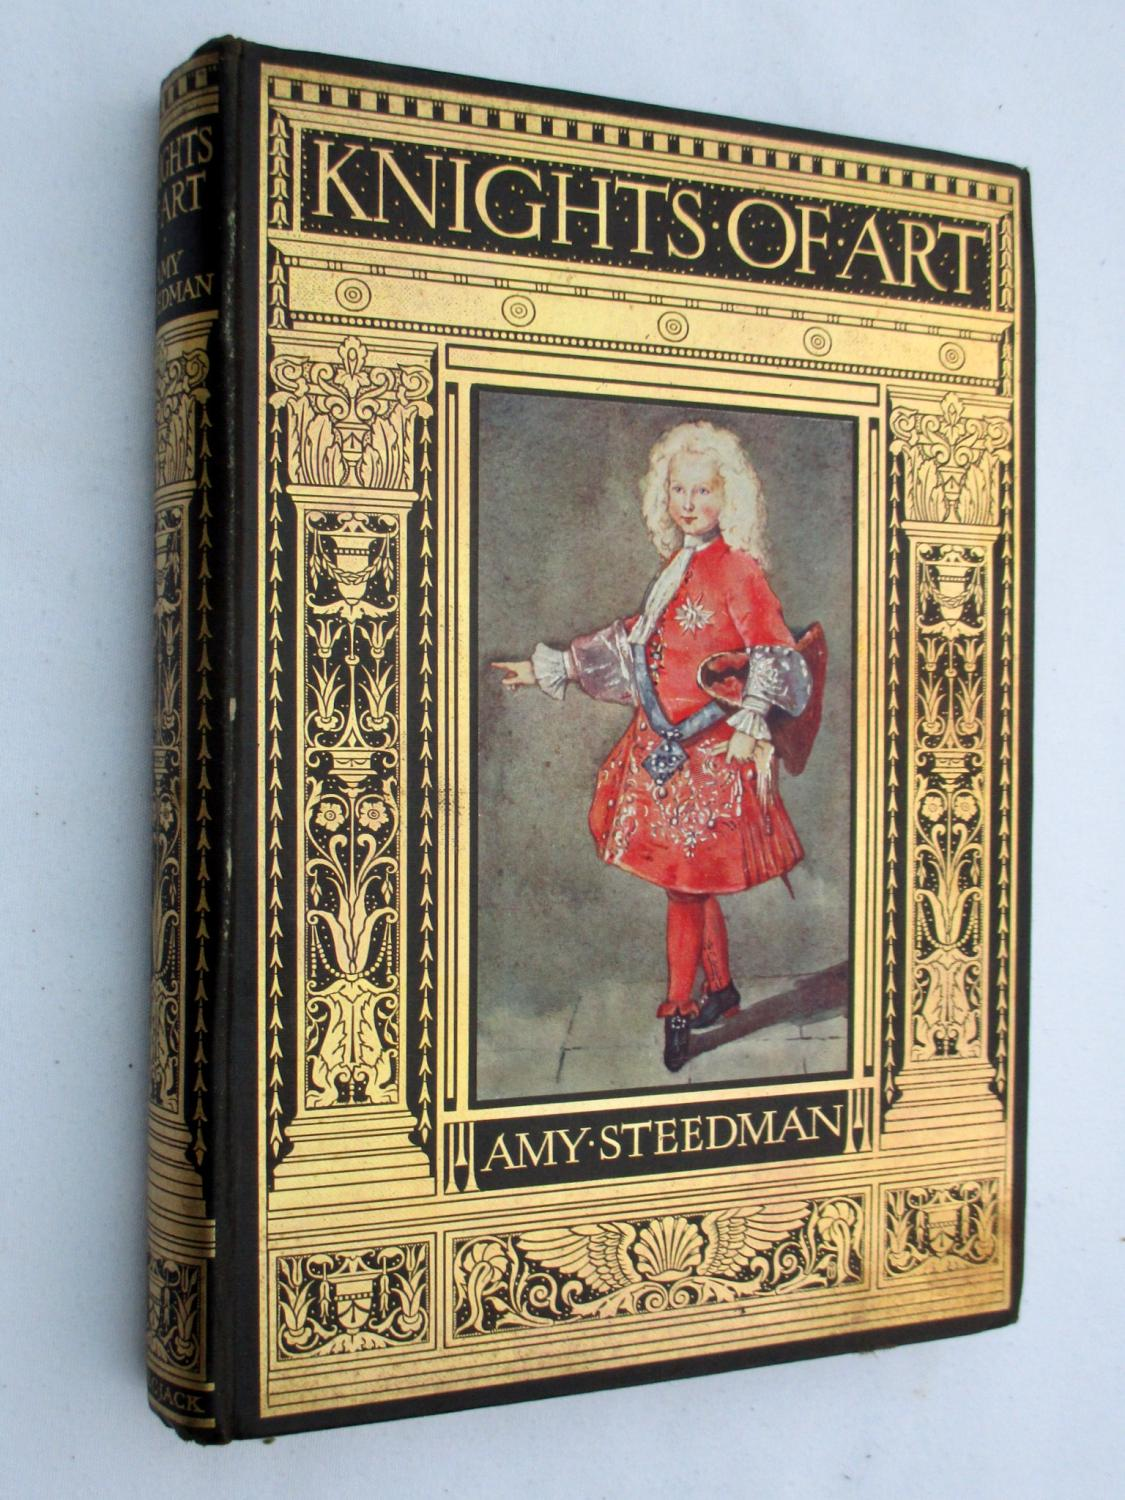 Amy Knights Pics knights of art. stories of the italian